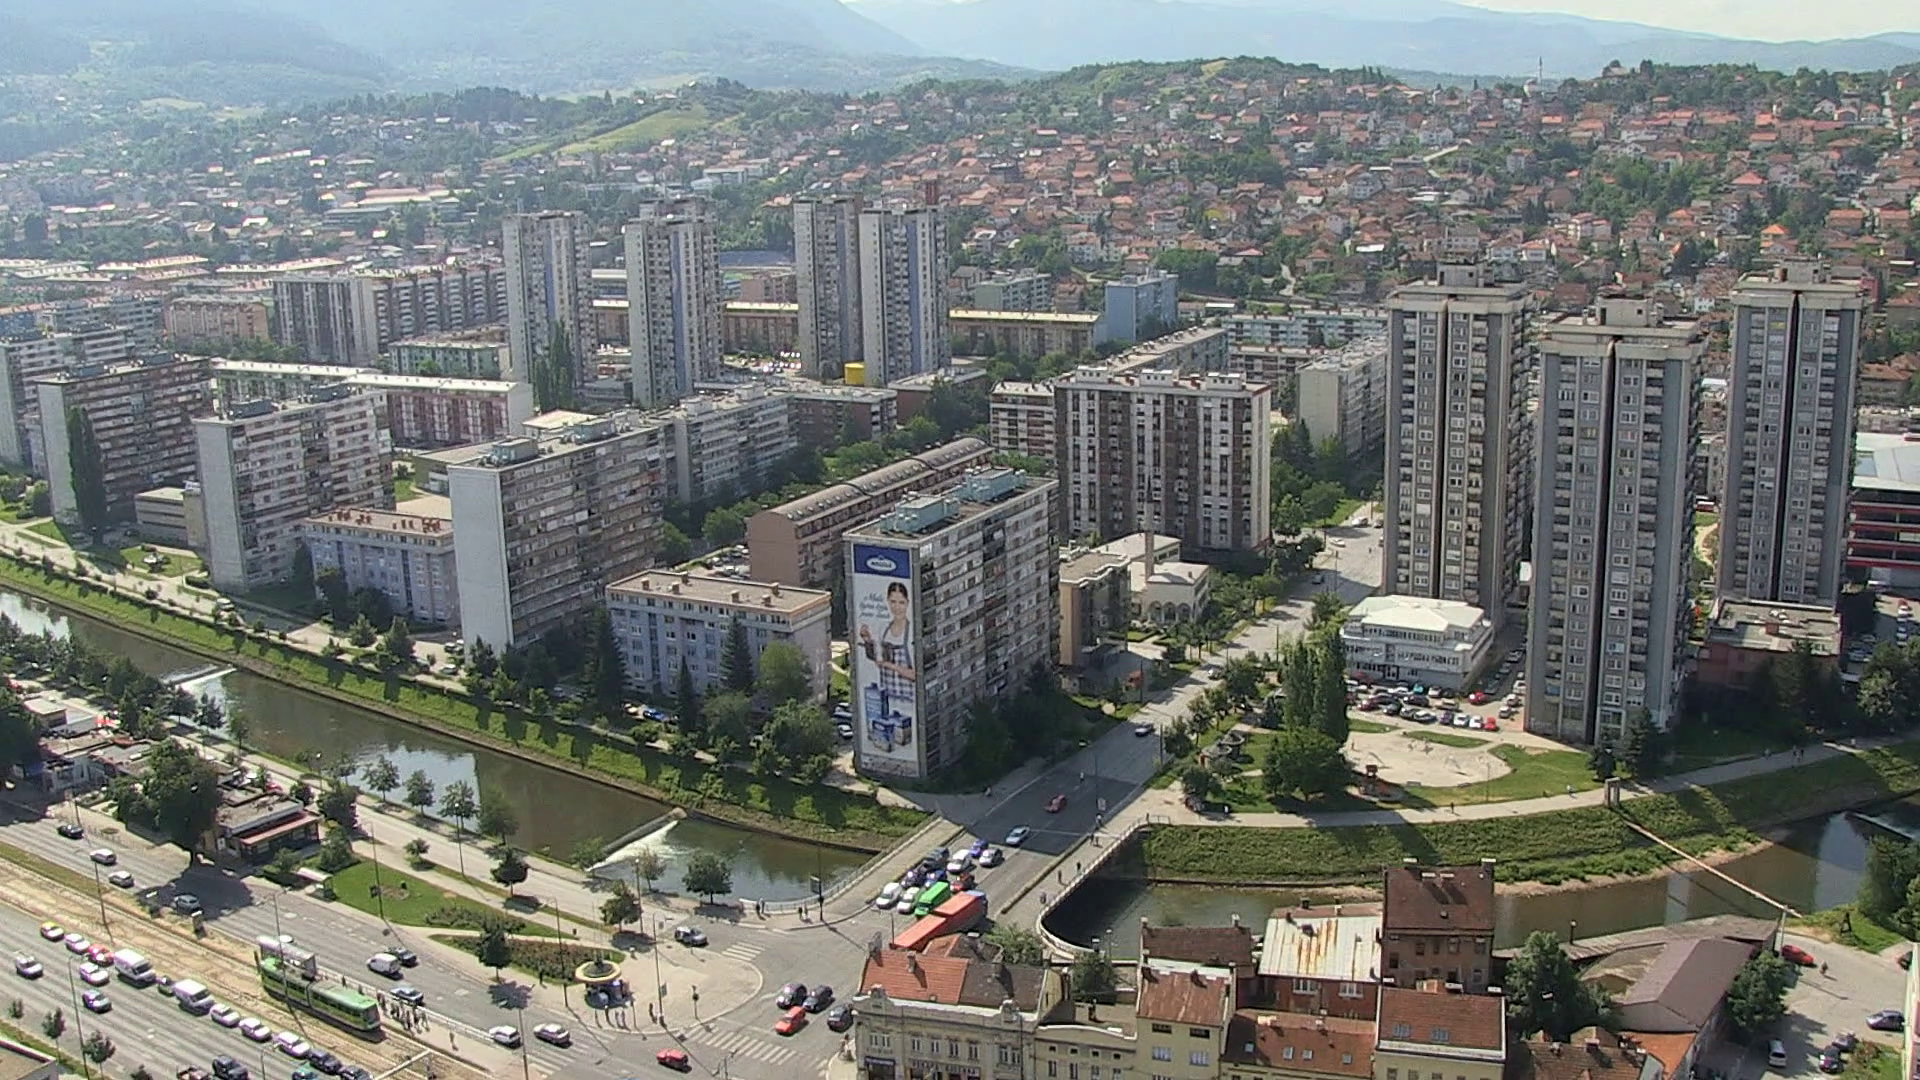 aerial-shot-of-sarajevo-bosnia-and-herzegovina-new-part-of-city_hea6u1-9x_thumbnail-full01